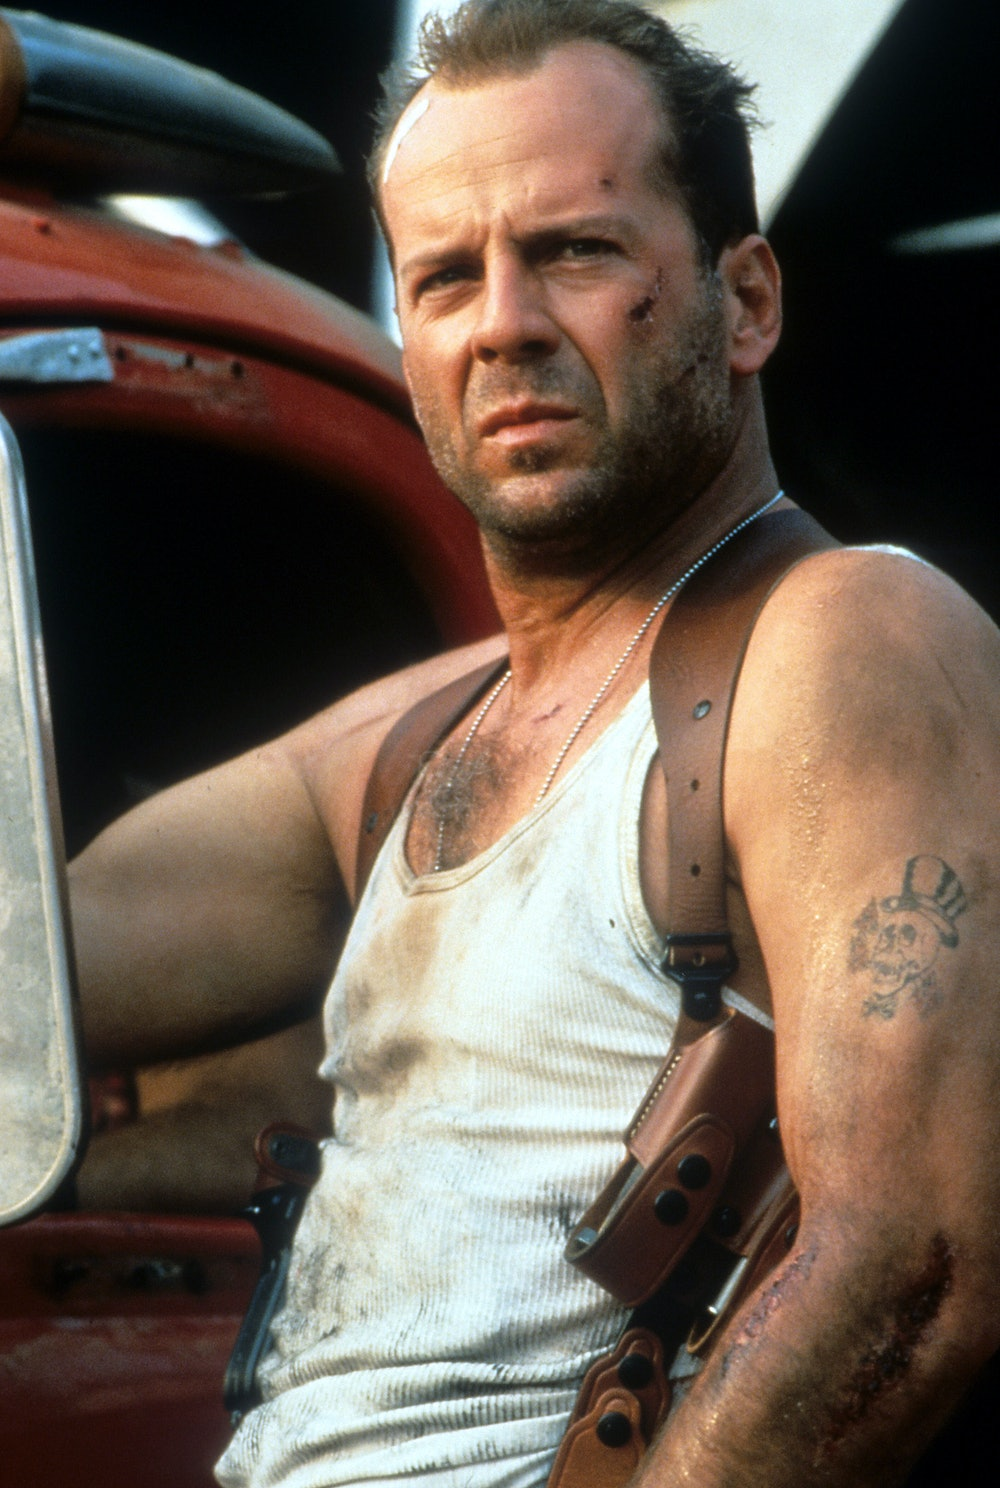 Bruce Willis wounded and disheveled in a scene from the film 'Die Hard: With a Vengeance', 1995. (Ph...